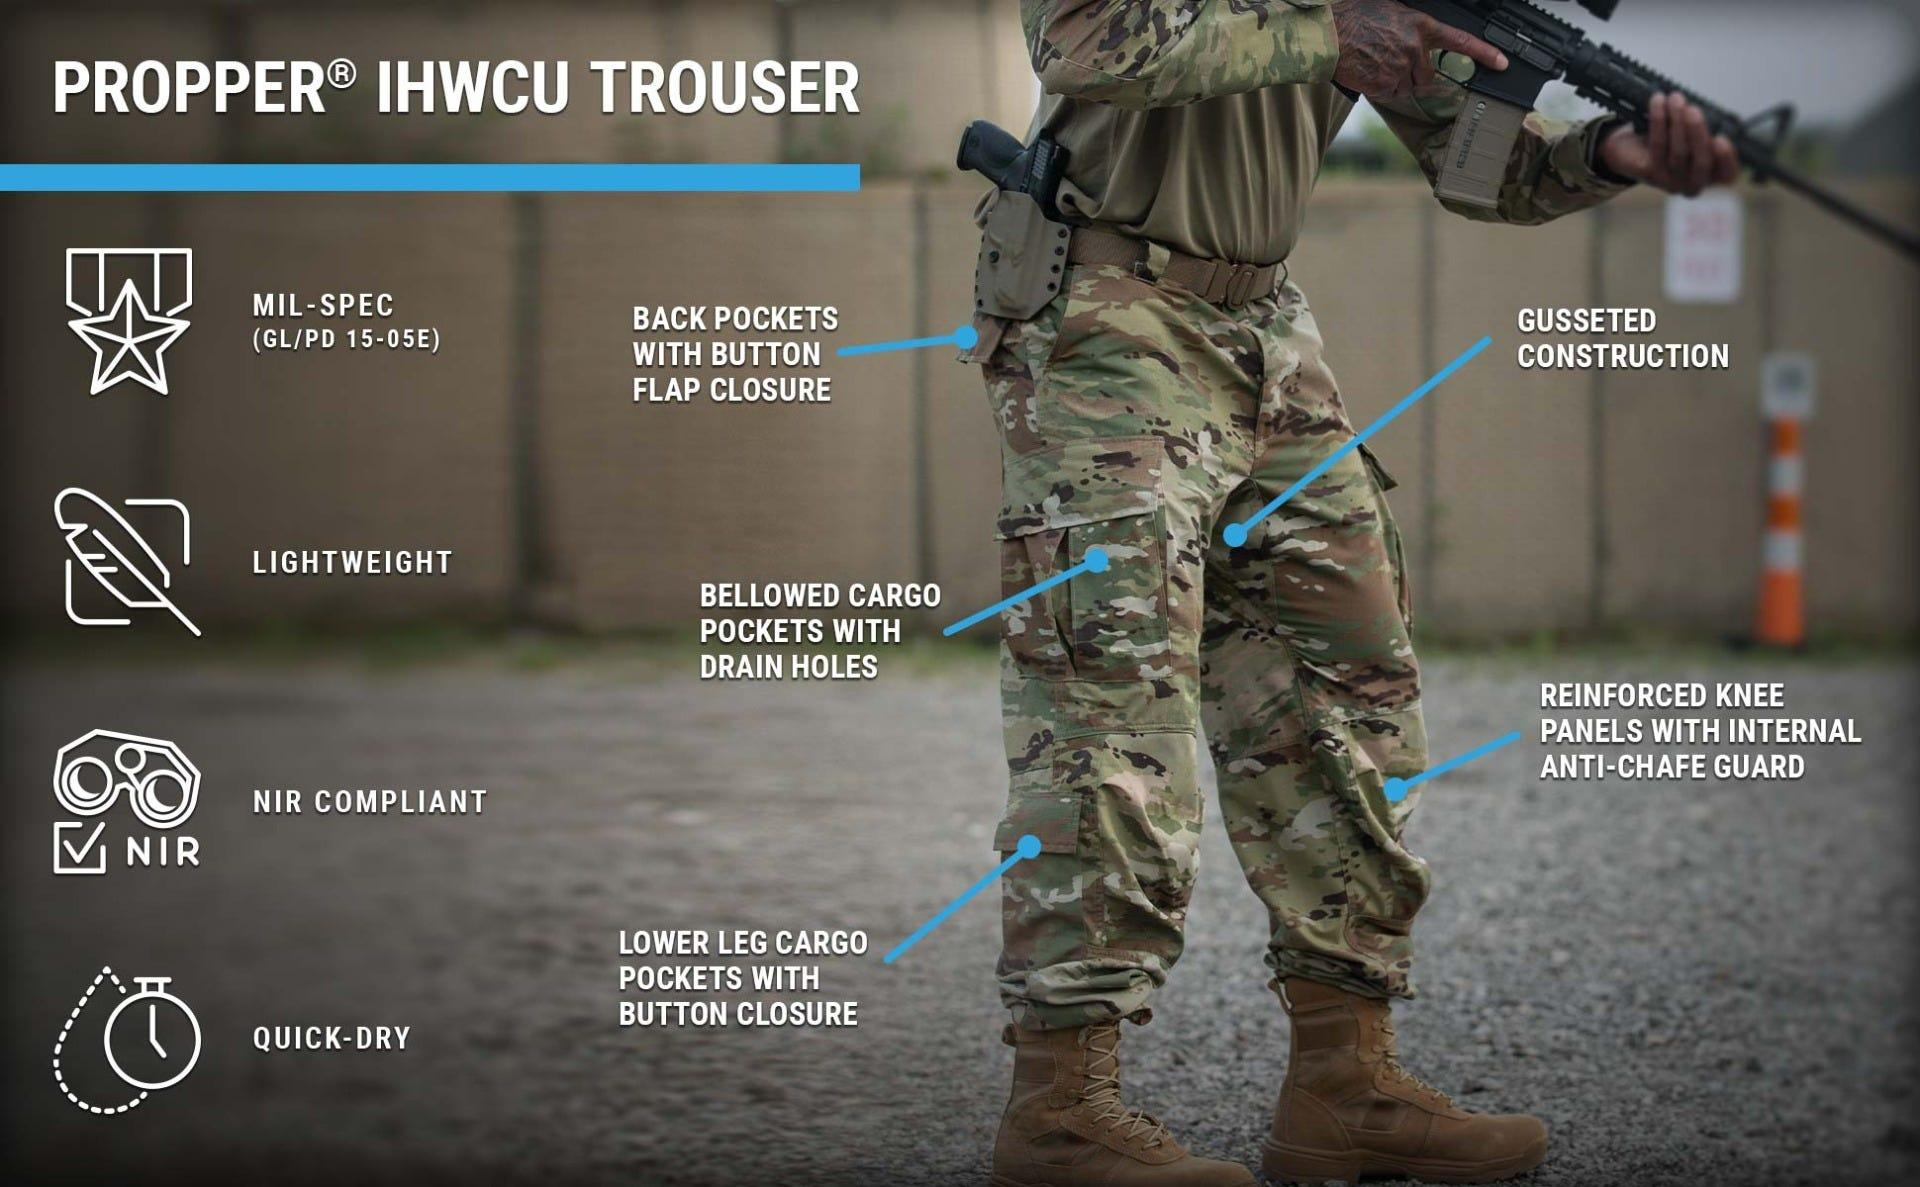 Hot Weather Combat Trouser featuring cargo pockets and nylon knee guards worn by man holding rifle